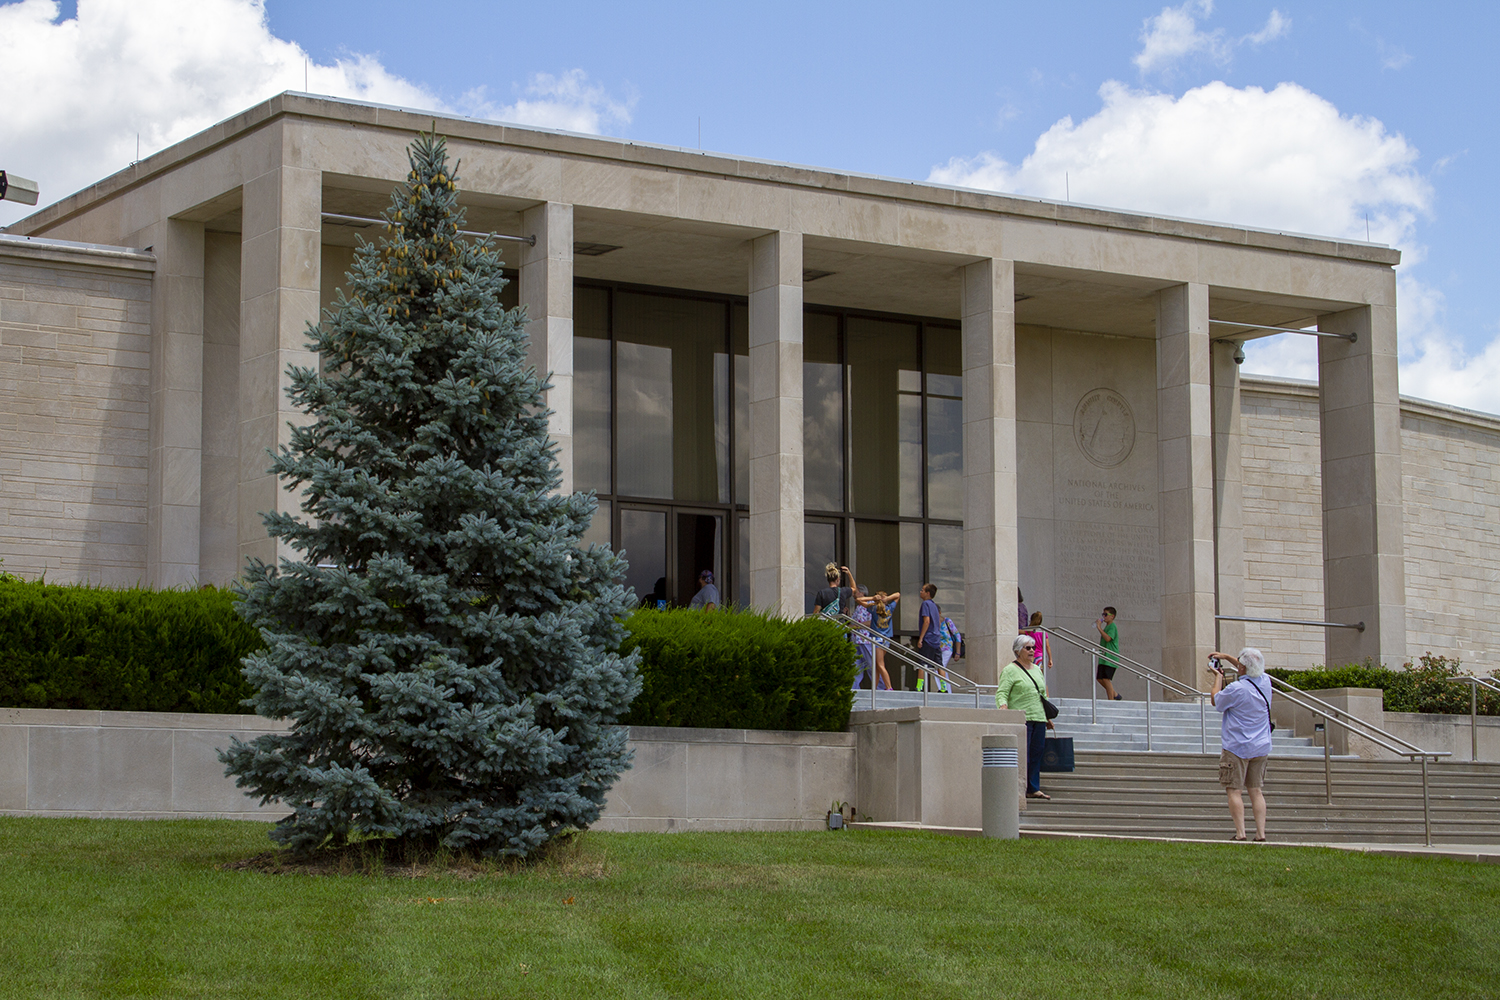 Harry S. Truman Presidential Library & Museum